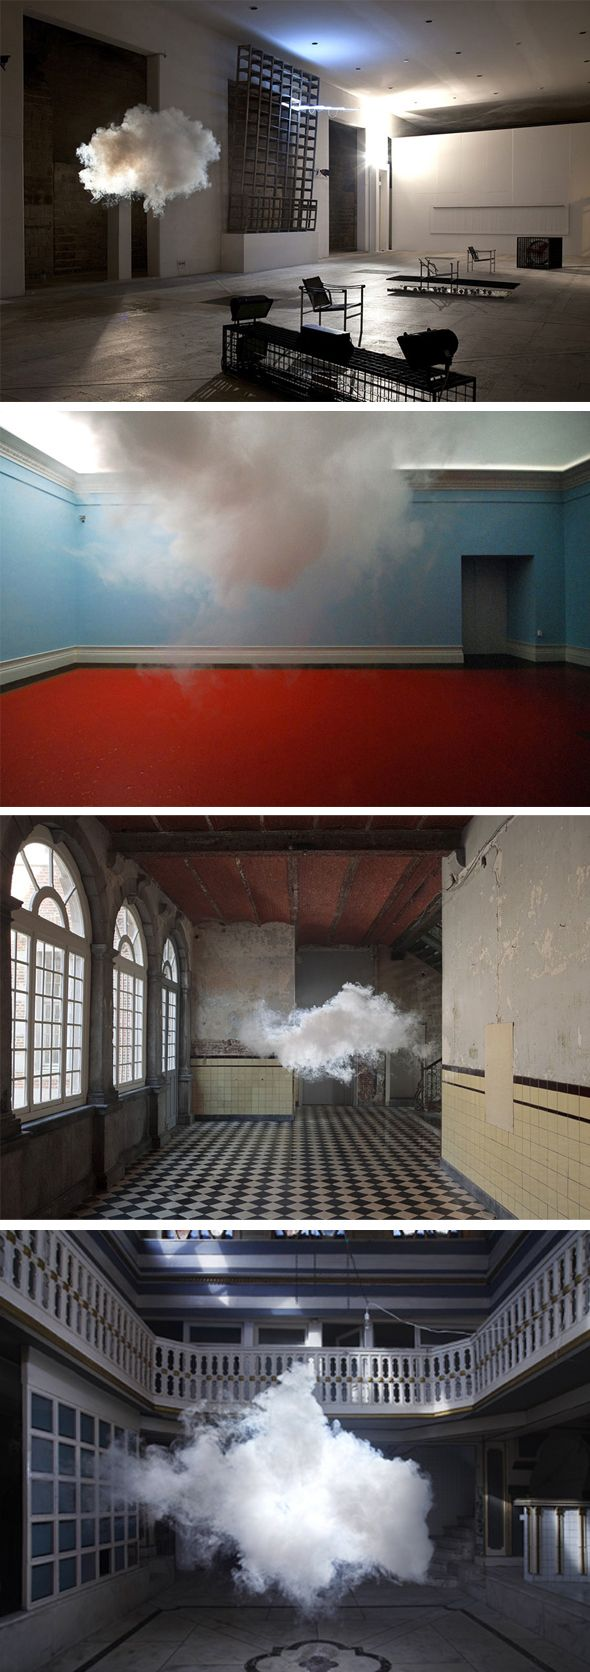 Artiste Hollandais Berndnaut Smilde #artiste contemporain photo montage